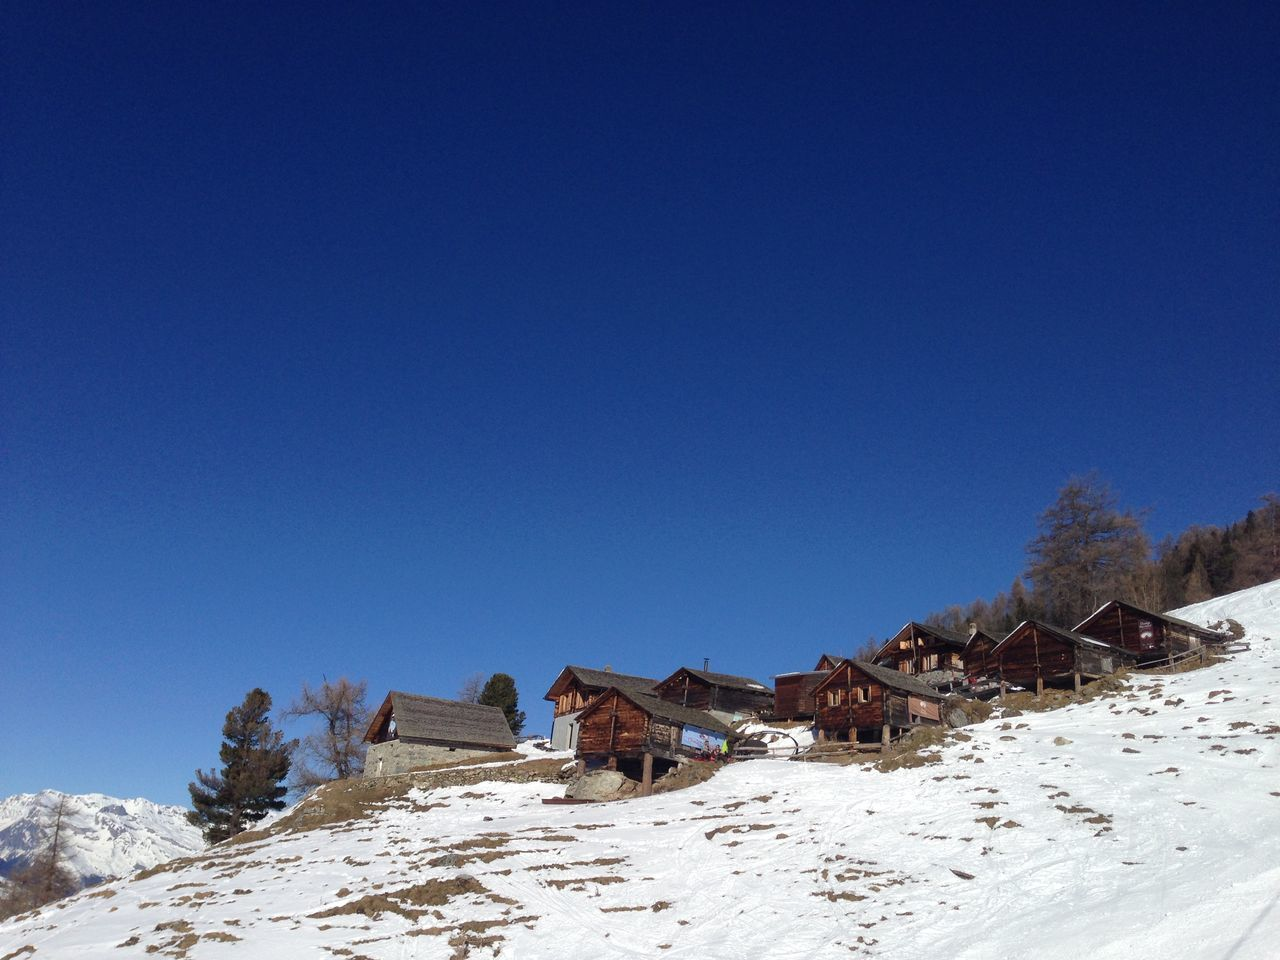 Houses On Snow Covered Field By Mountains Against Clear Blue Sky